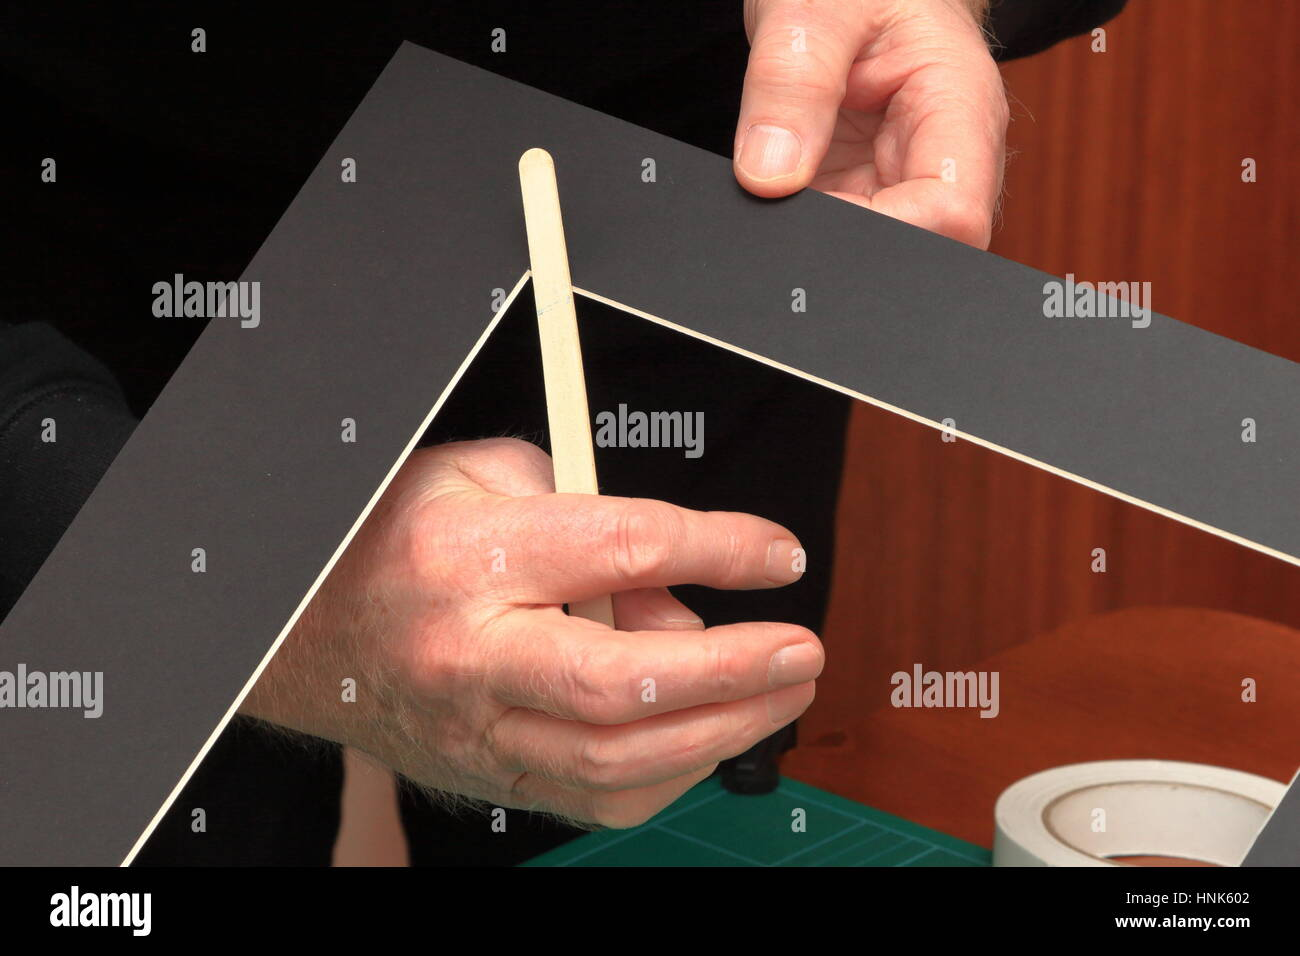 Using a common nail emery board to carefully tidy up small imperfections in the corners of a freshly cut picture - Stock Image